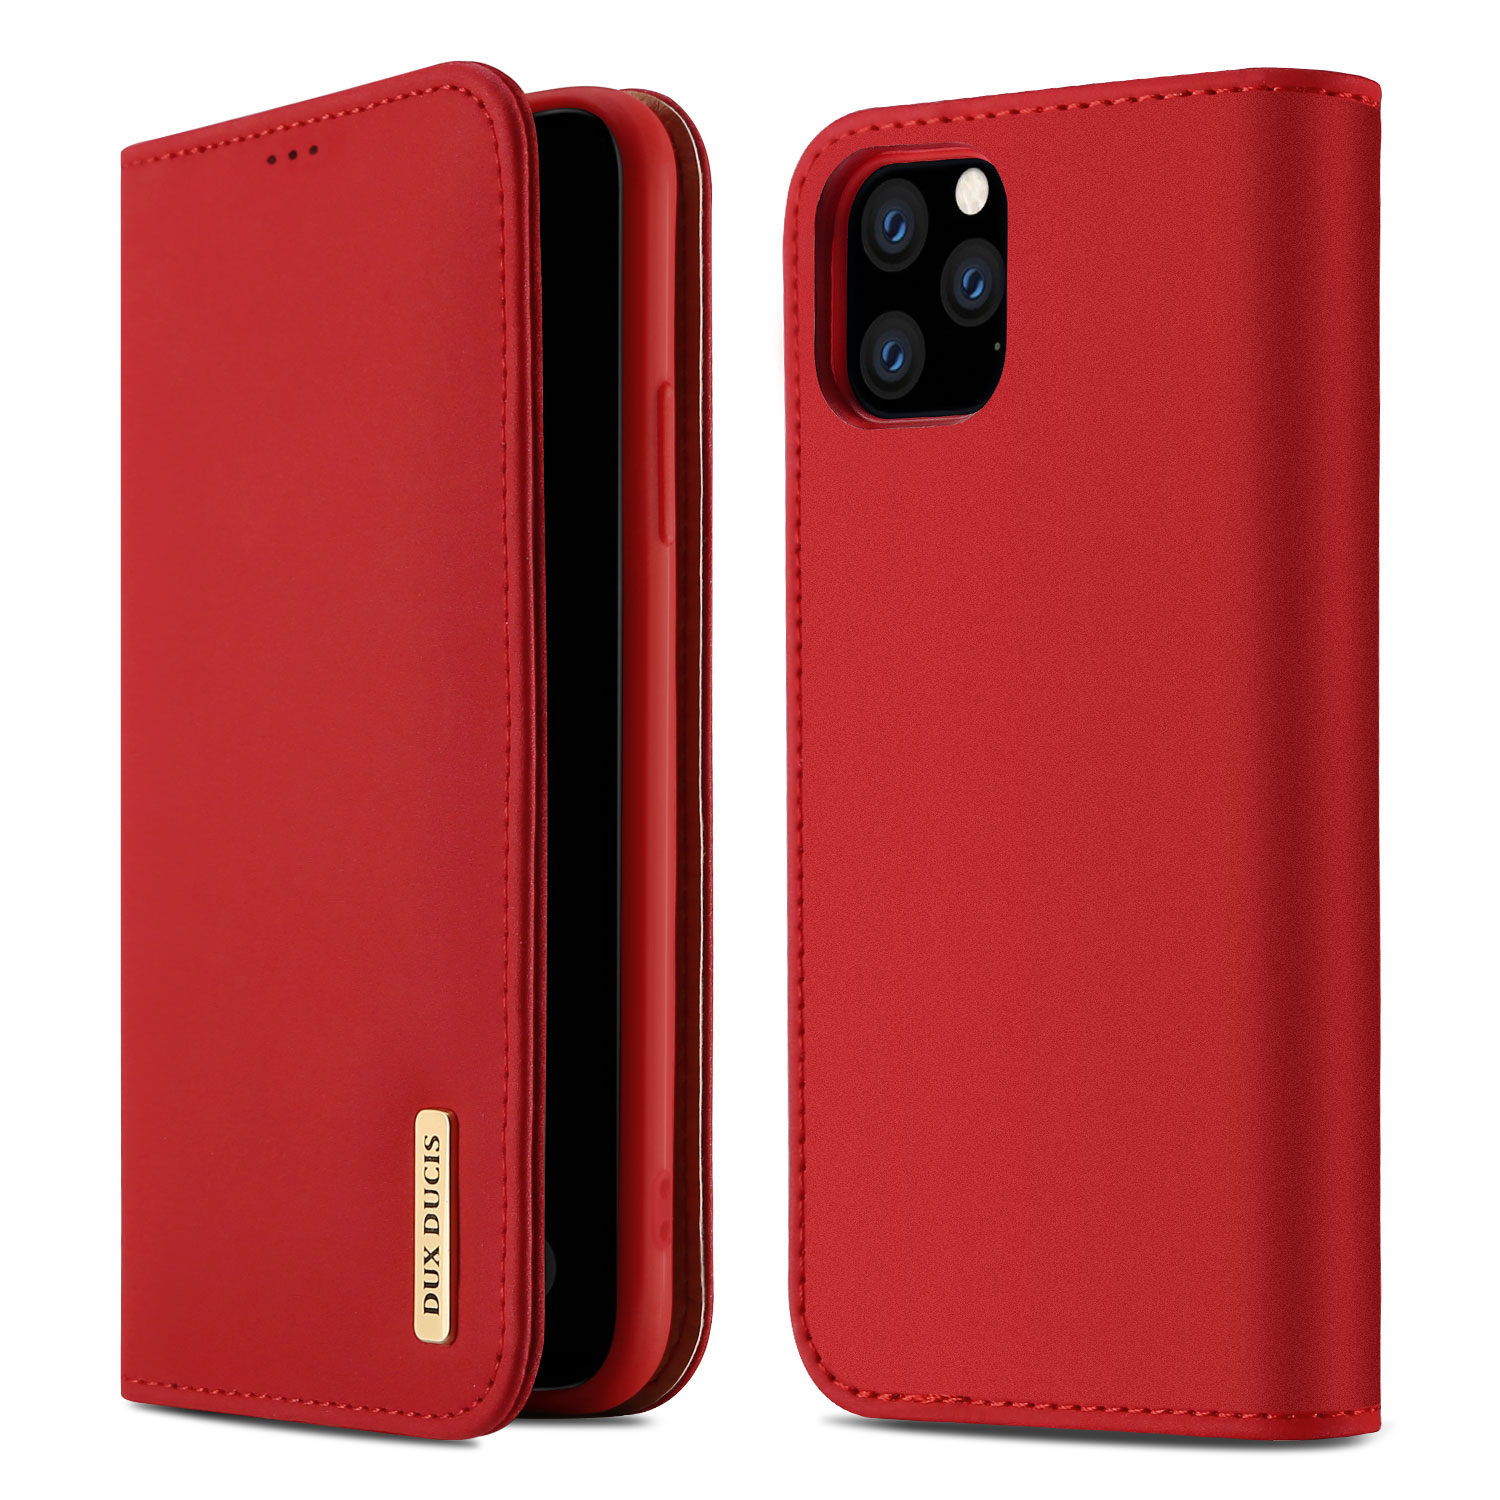 DUX DUCIS for iPhone 11 pro MAX 2019 Luxury Genuine Leather Magnetic Flip Cover Full Protective Case with Bracket Card Slot red